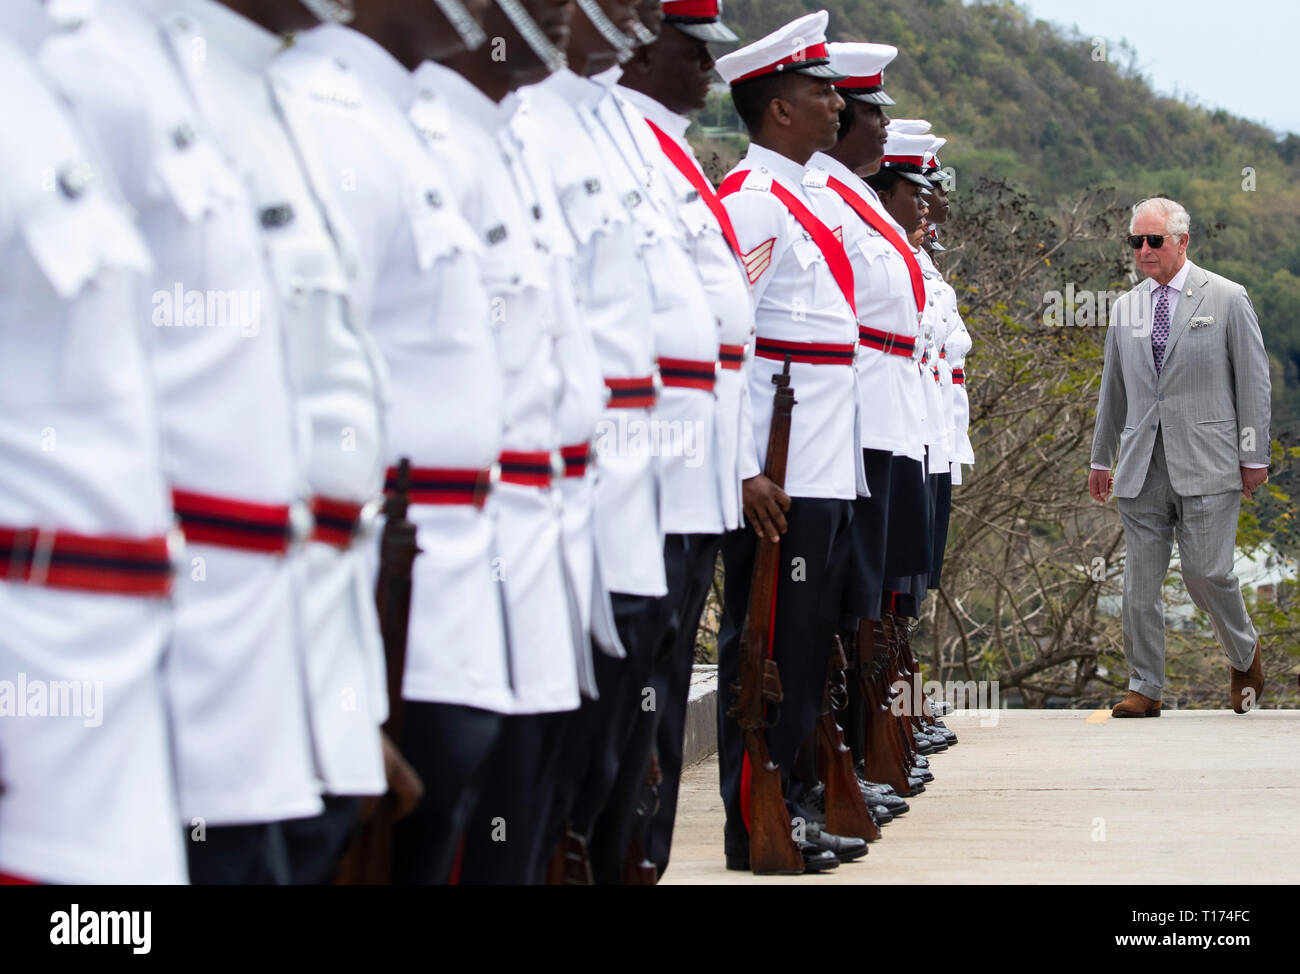 The Prince of Wales inspects the troops during the Official Welcome Ceremony and Reception with the Prime Minister Dr. Keith Mitchell at the Grenada Houses of Parliament Building during a one day visit to the Caribbean island of Grenada. - Stock Image